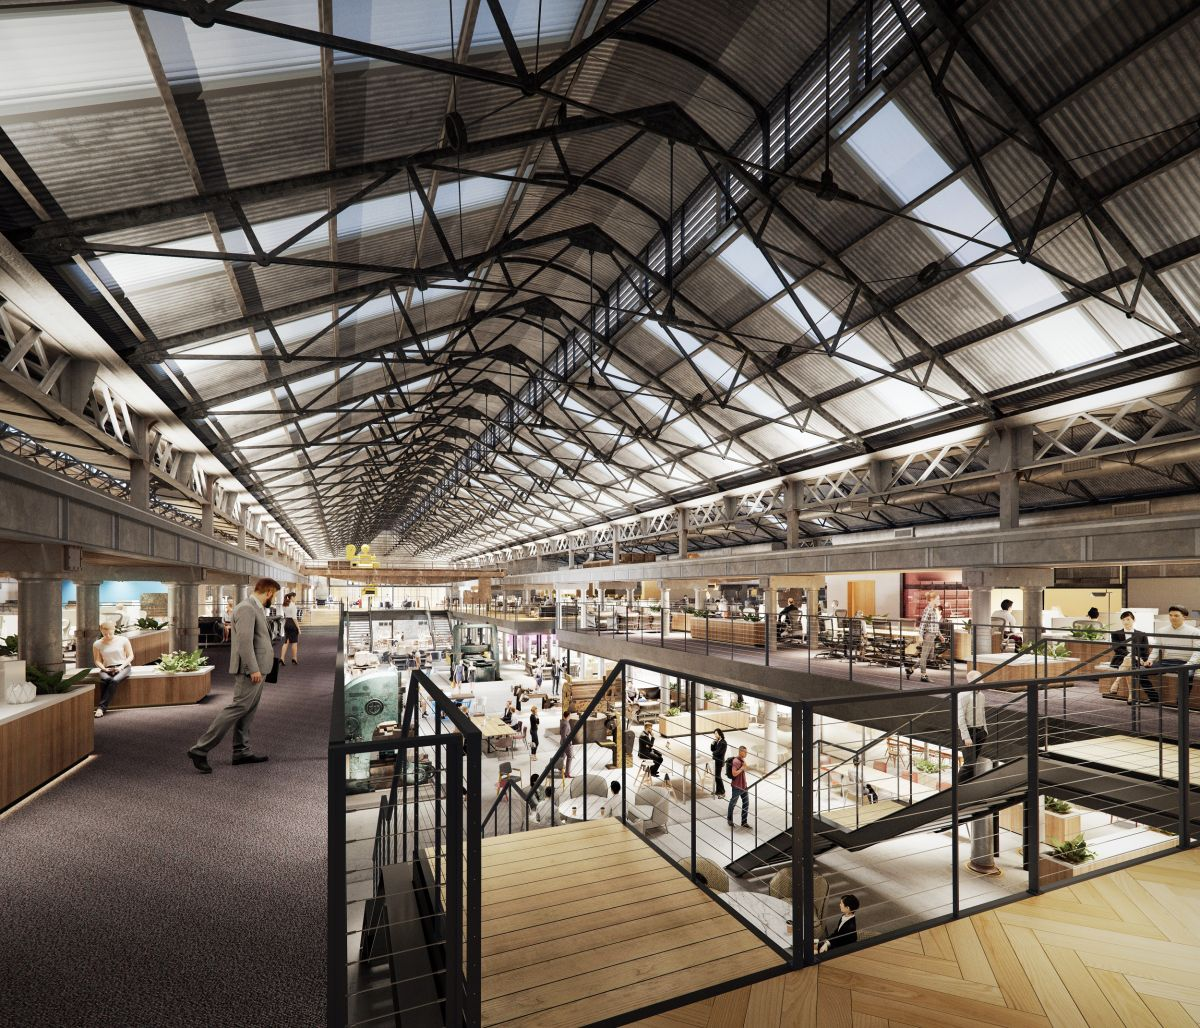 The Locomotive Workshops will include some office space. Image: Supplied